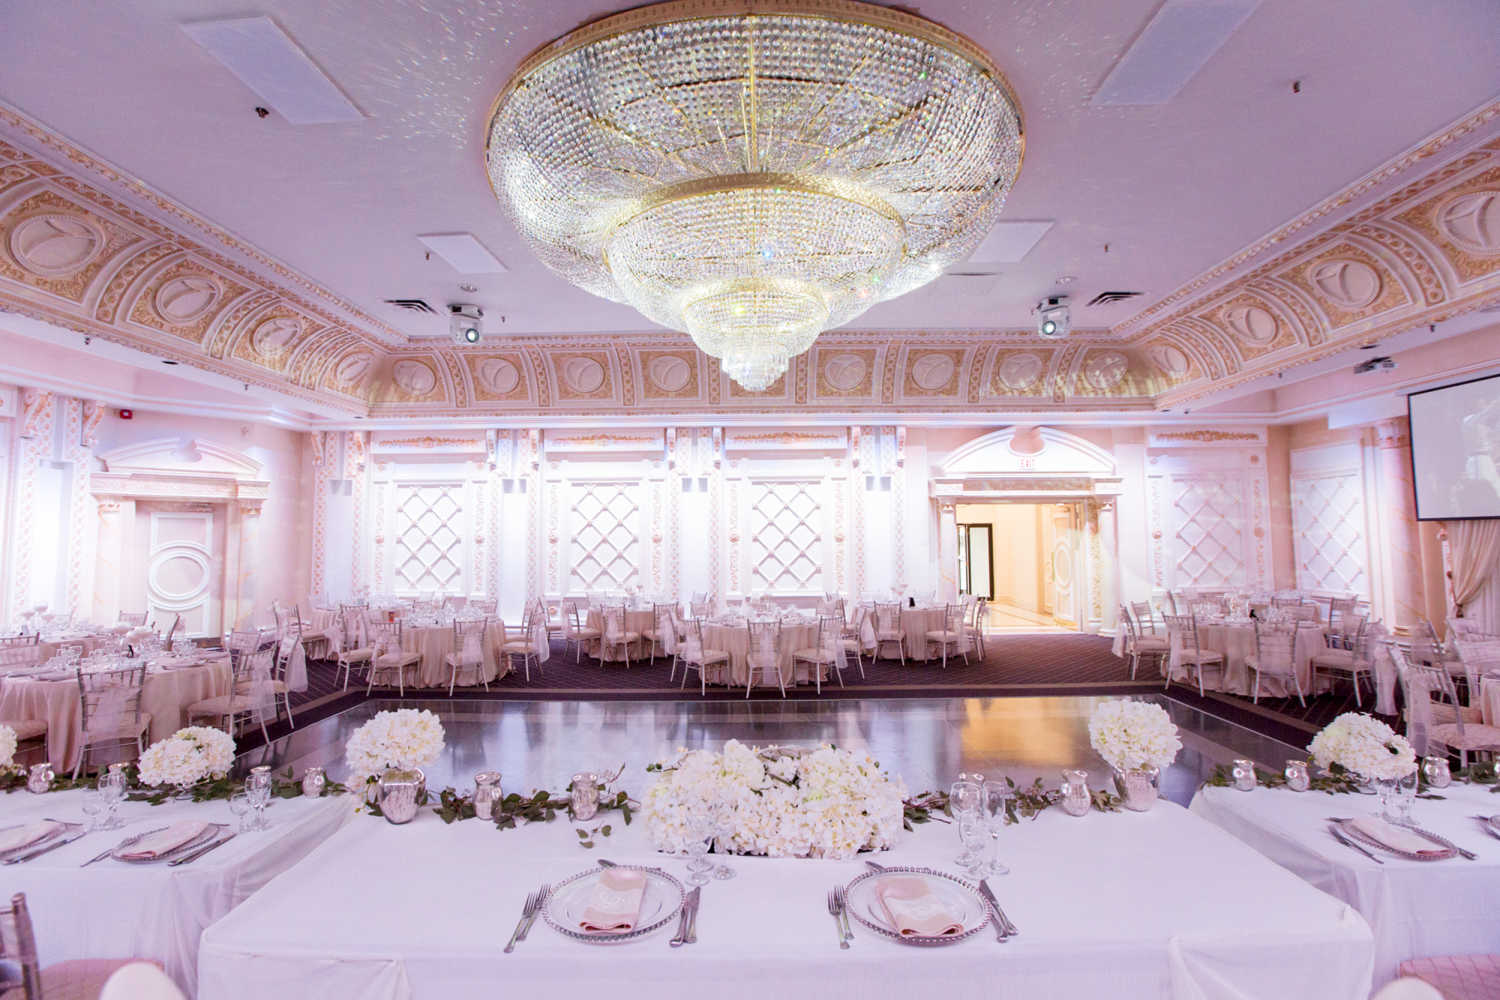 The Queen Victoria Wedding venue at paradise banquet halls with table settings, a large dance floor and a giant chandelier.